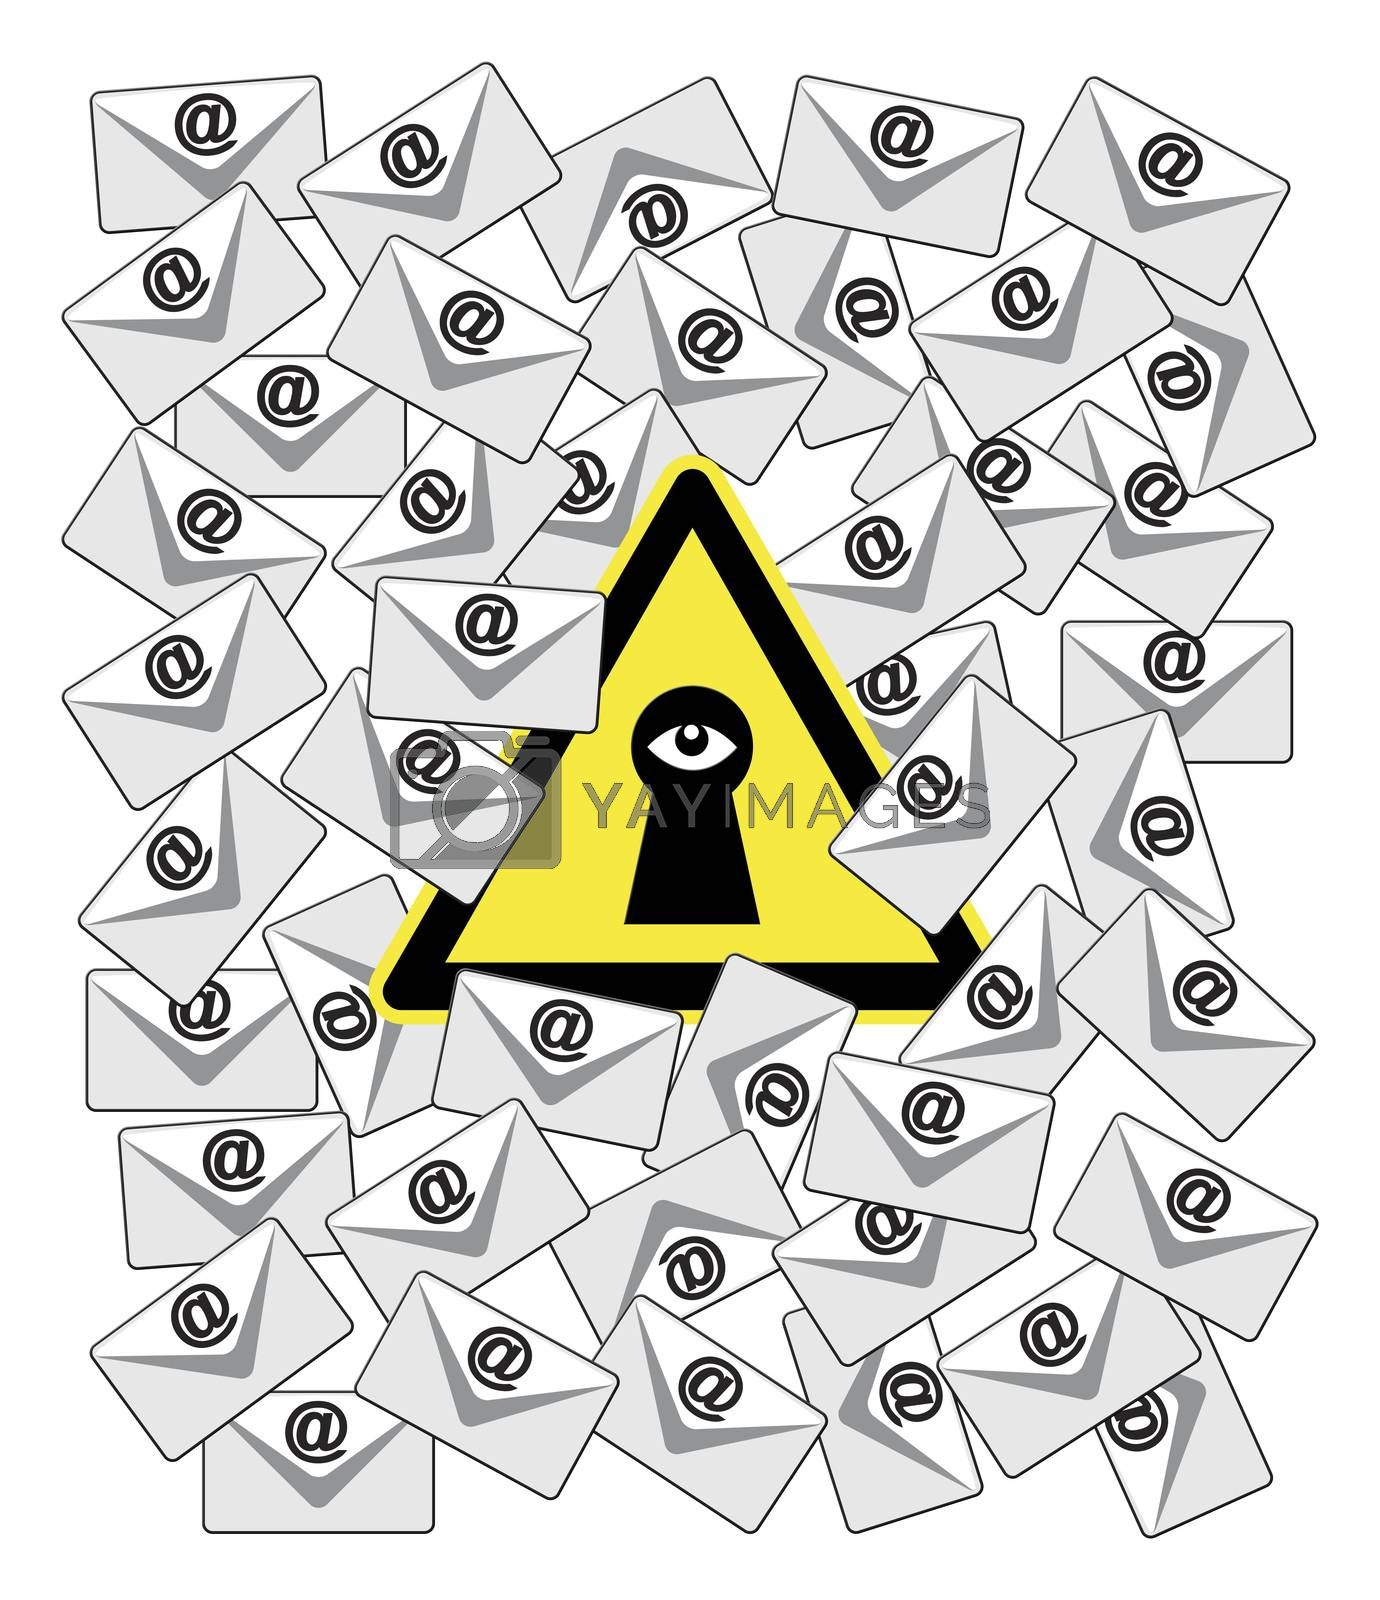 Concept sign of monitoring software which records and forwards incoming and outgoing emails